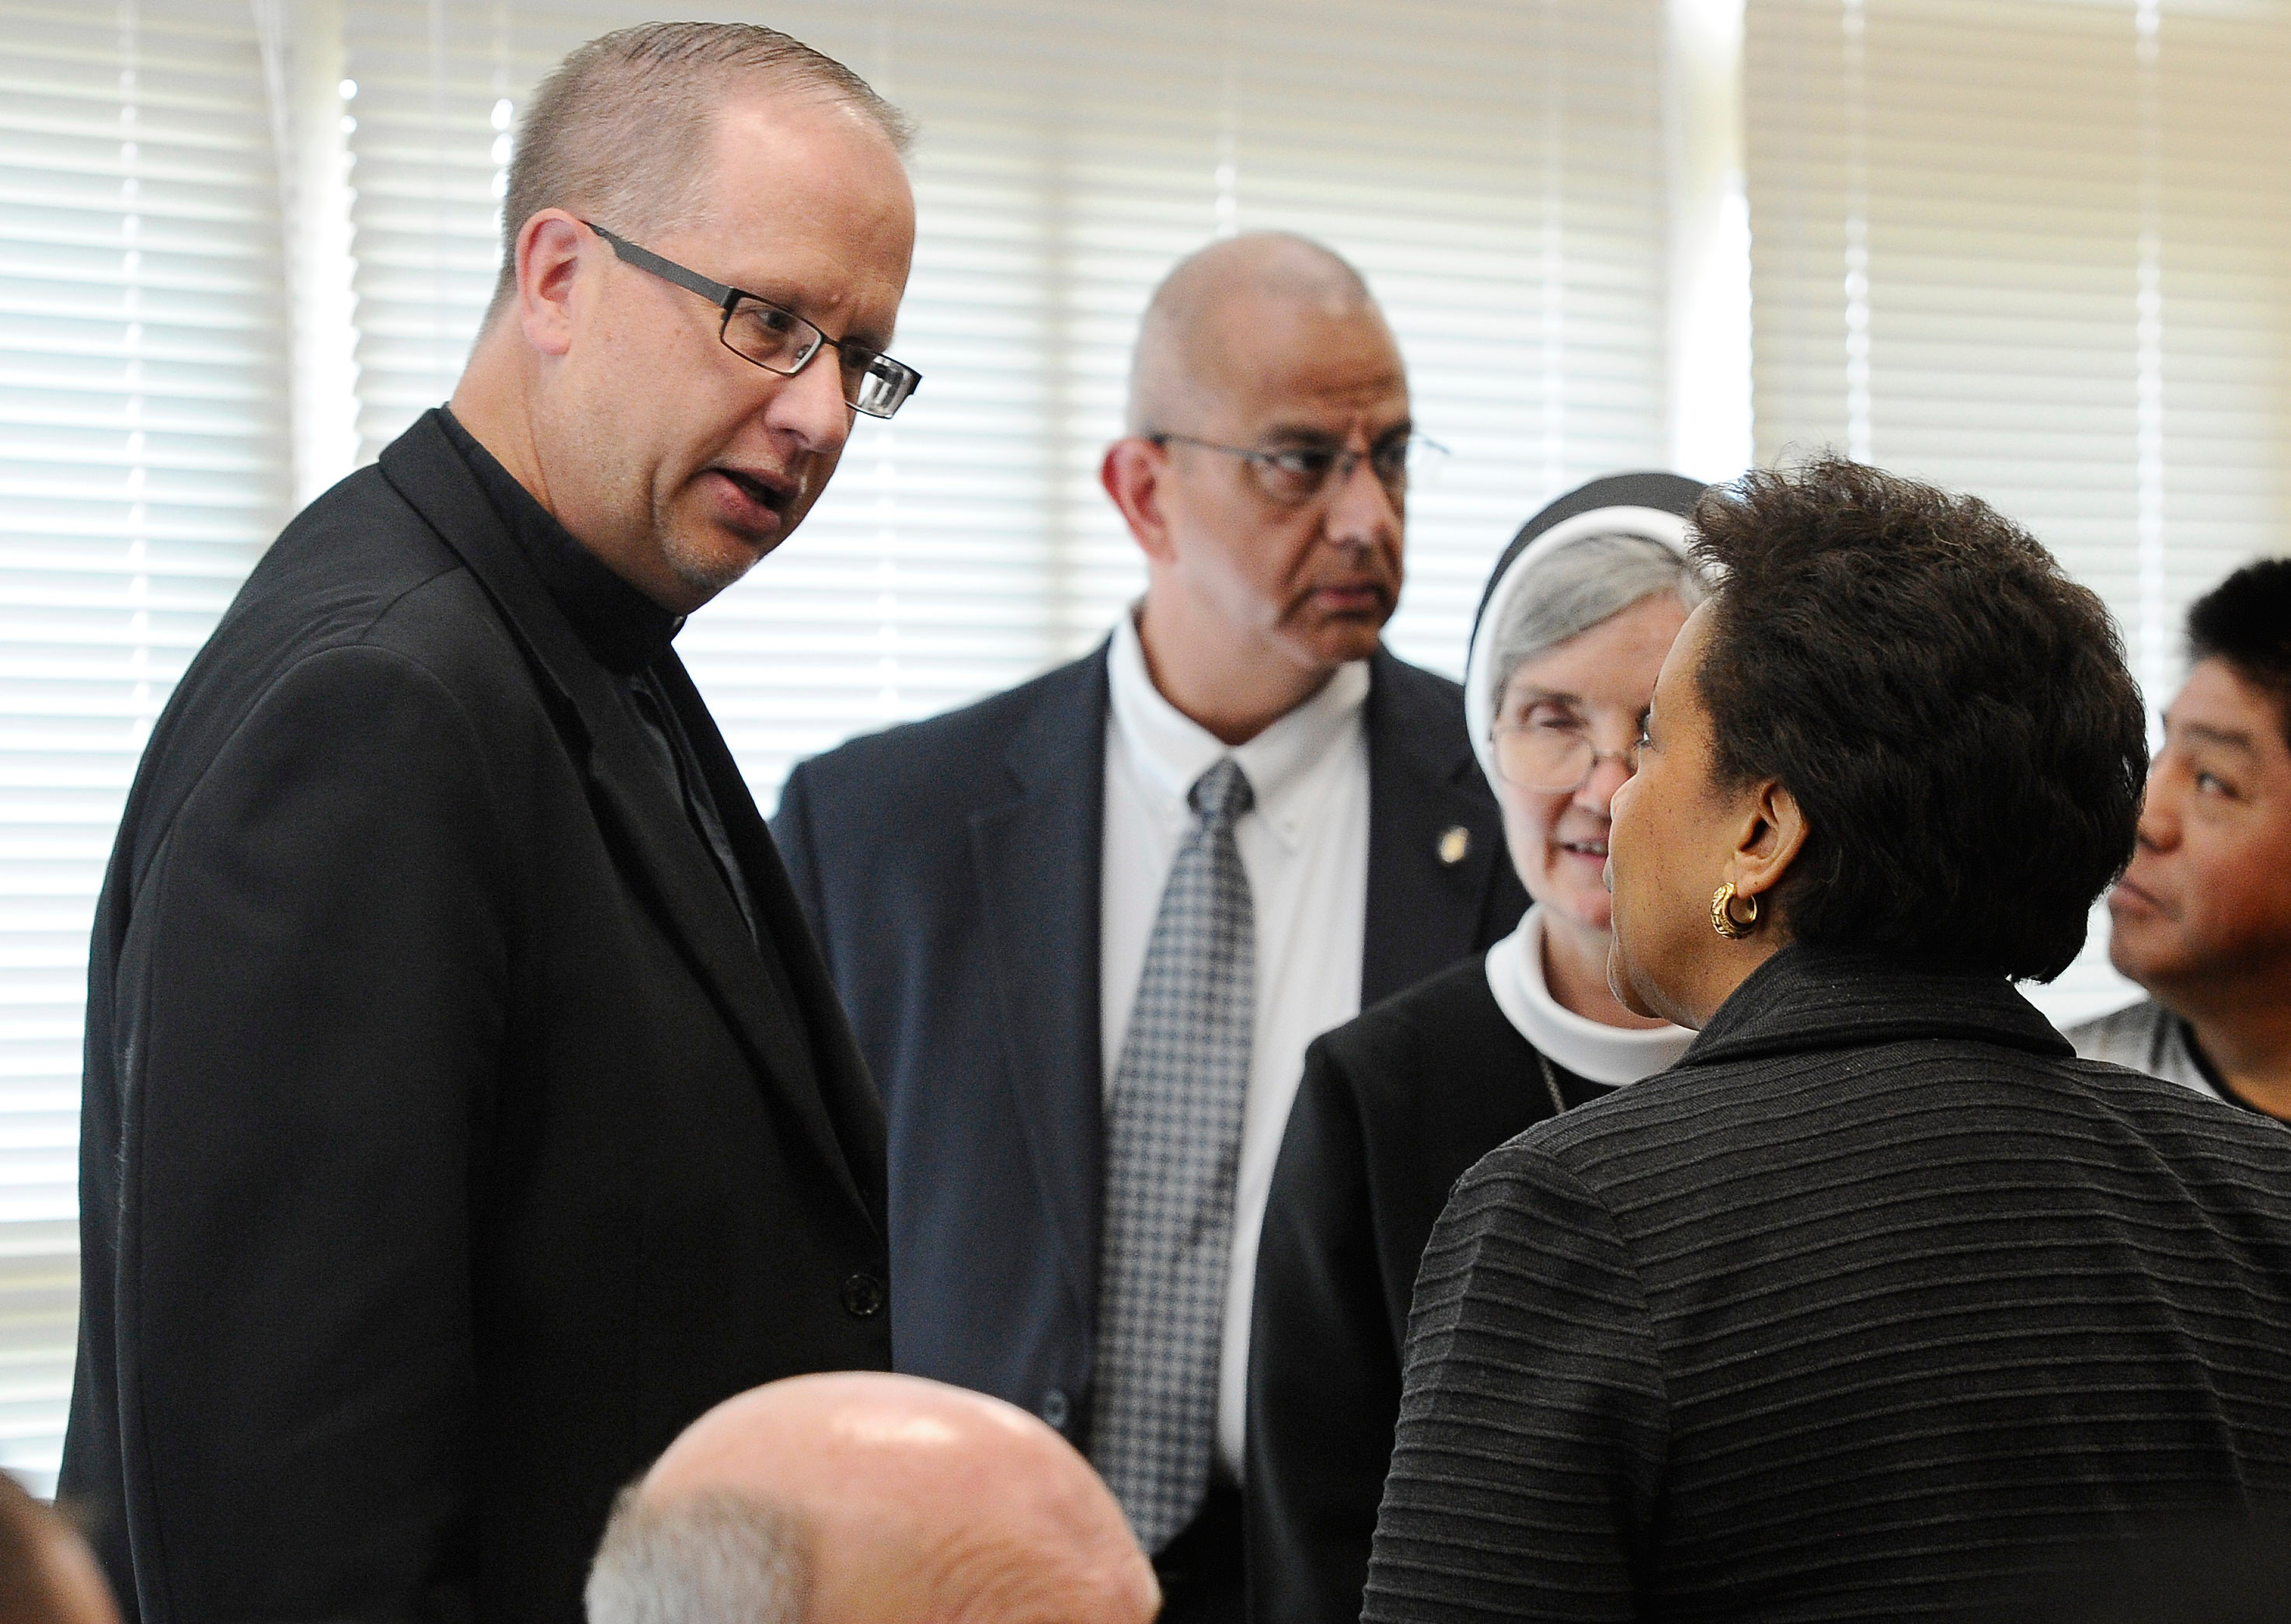 FILE PHOTO: Rev. James Manship, left, talks with  Attorney General Loretta Lynch during a community policing tour, Tuesday, July 21, 2015, in East Haven, Conn. Manship has taken over as pastor of St. Rose of Lima Church in Meriden where he says immigrants fear deportation. (AP Photo/Jessica Hill)